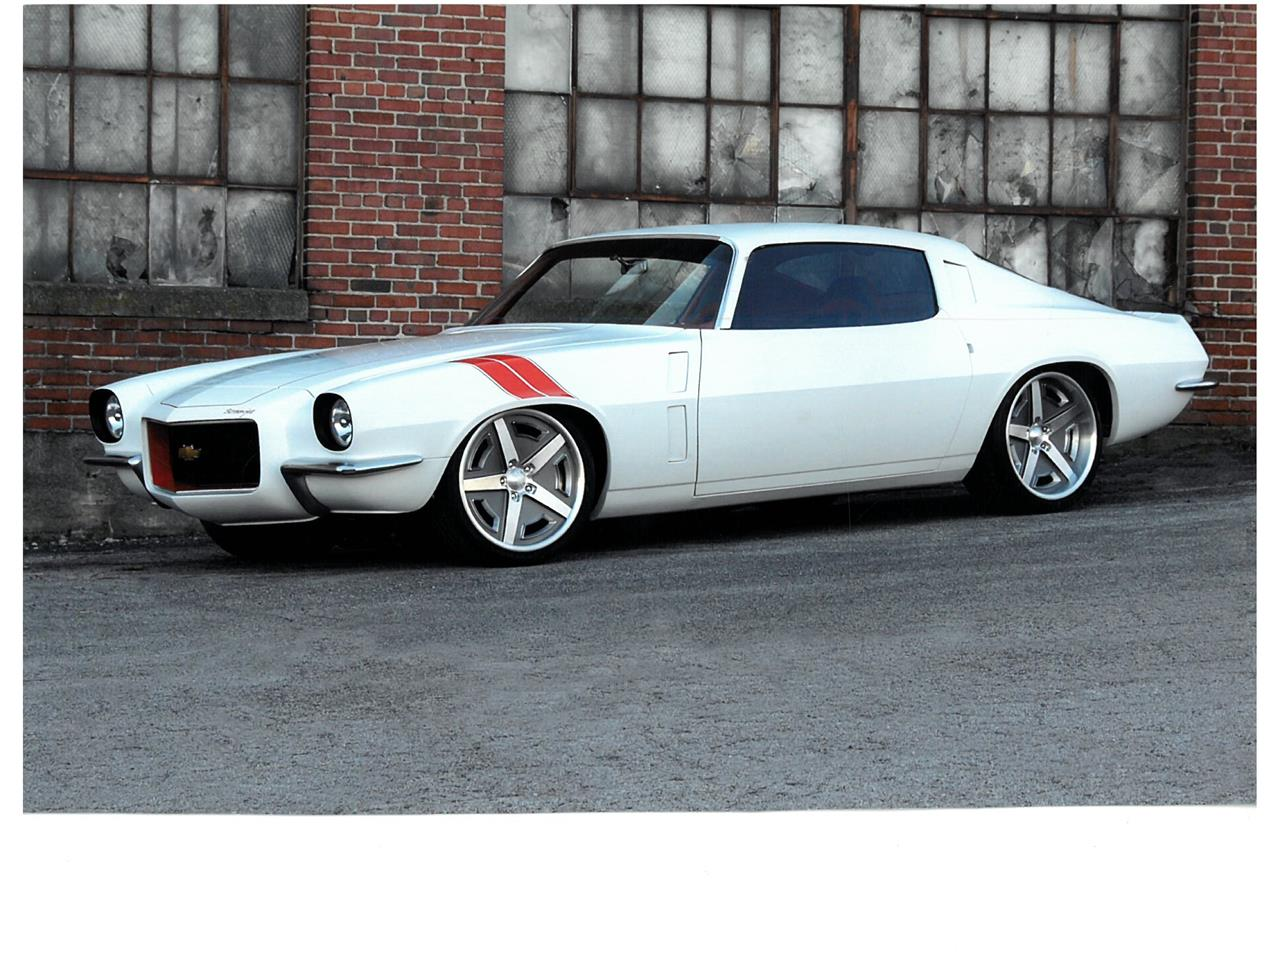 Large Picture of 1970 Chevrolet Camaro located in Elyria Ohio - $99,000.00 Offered by a Private Seller - GGNI